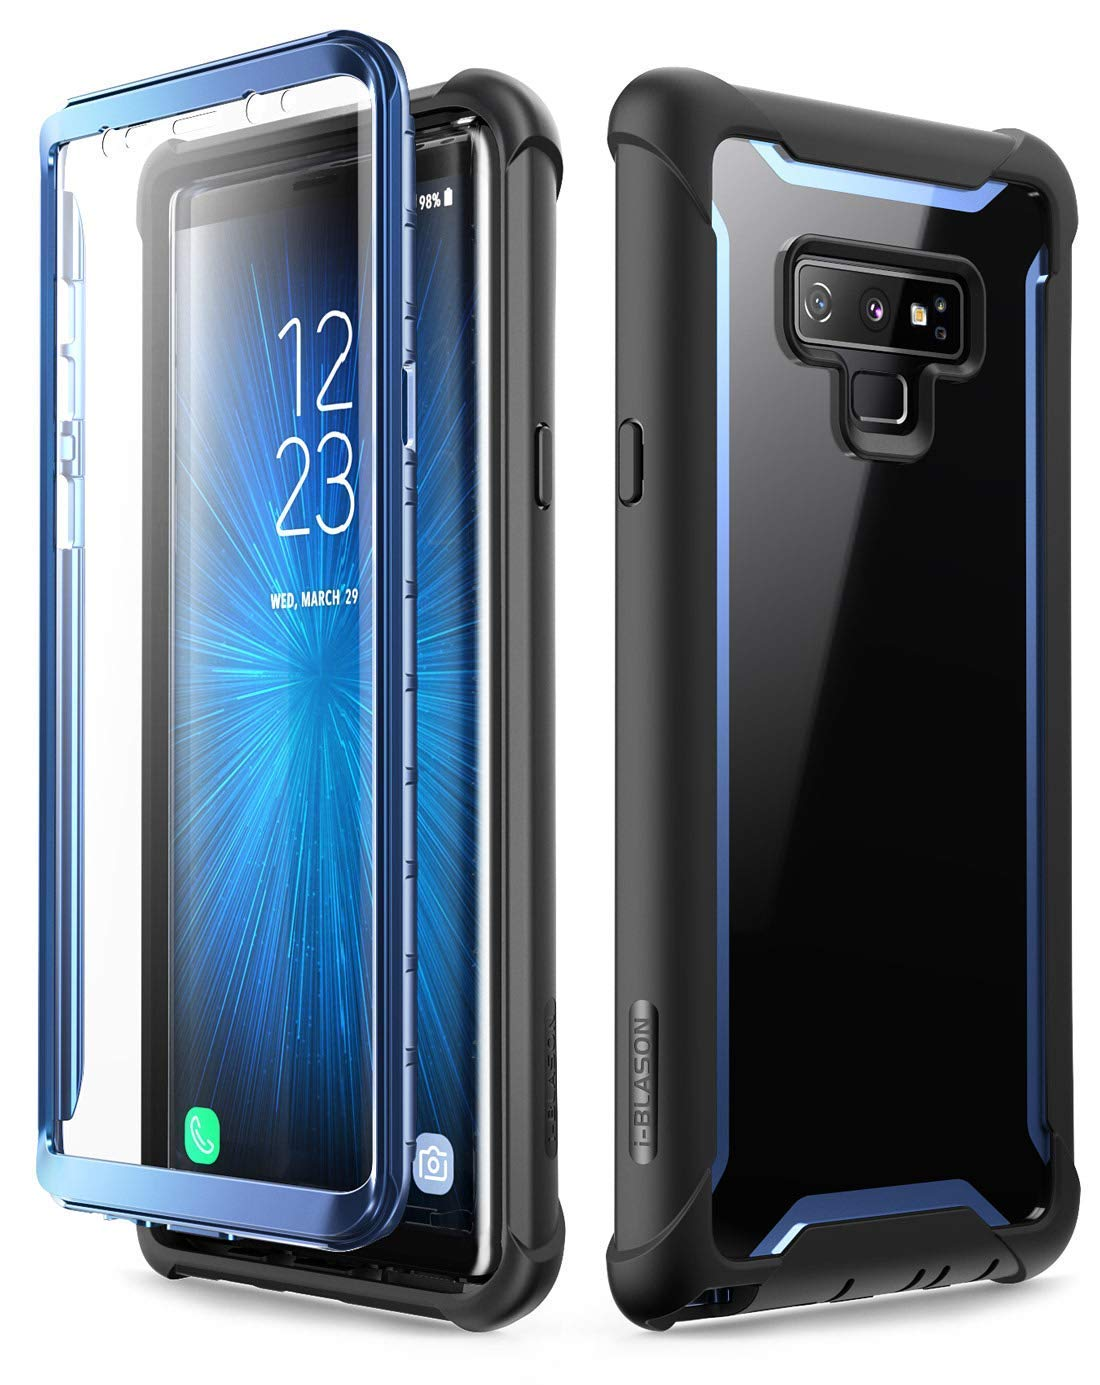 i-Blason Ares Designed for Galaxy Note 9 Case, Full-Body Rugged Clear Bumper Case with Built-in Screen Protector for Galaxy Note 9 2018 Release, Black/Blue